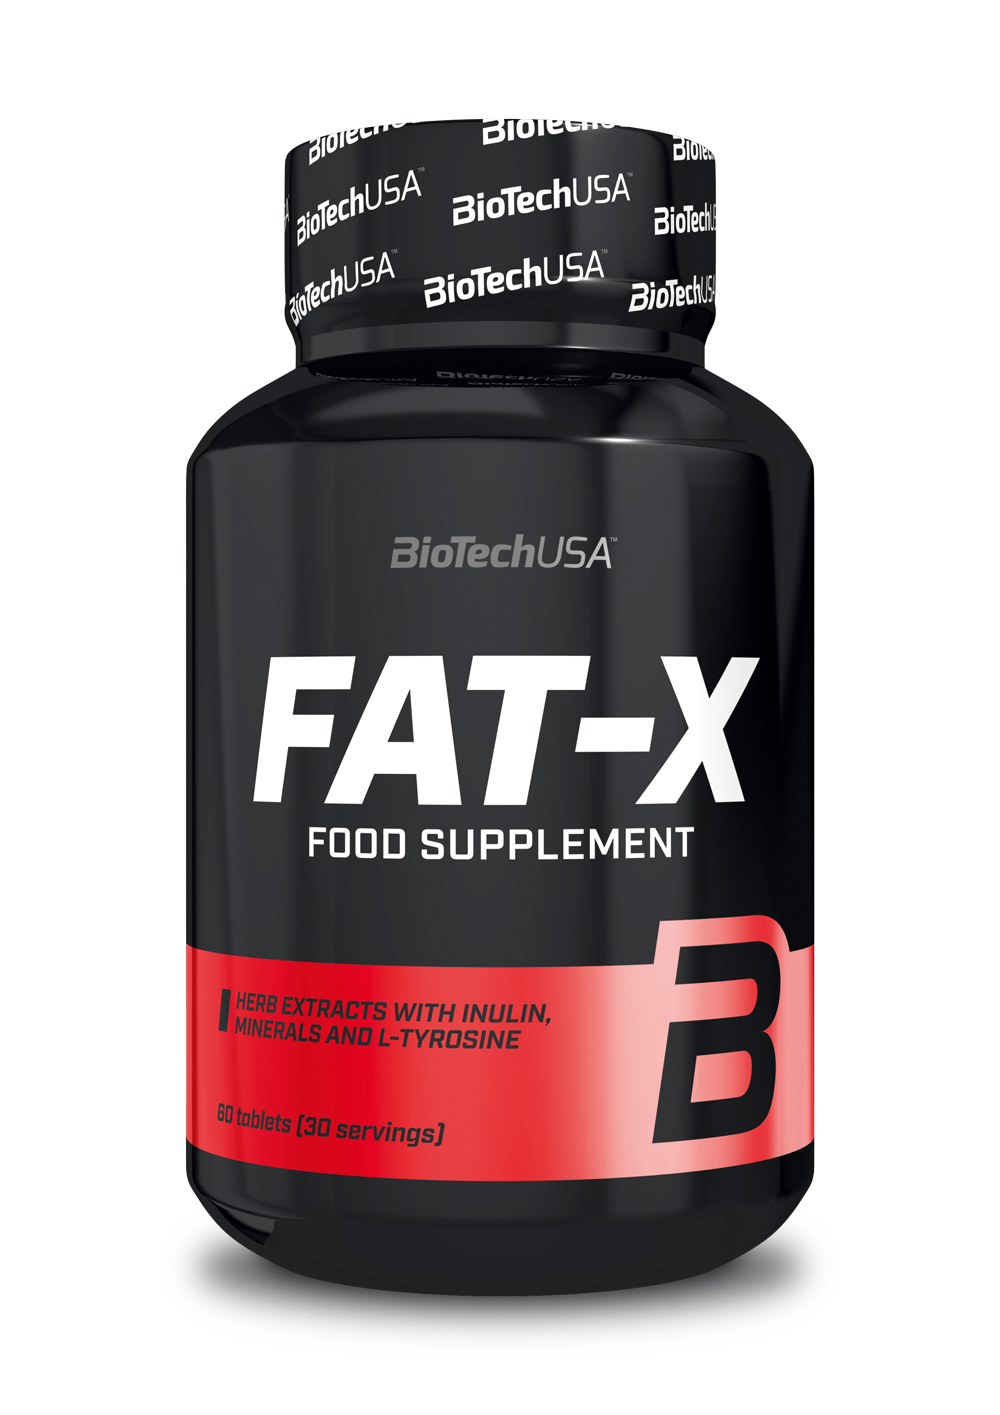 FAT- X Biotech USA